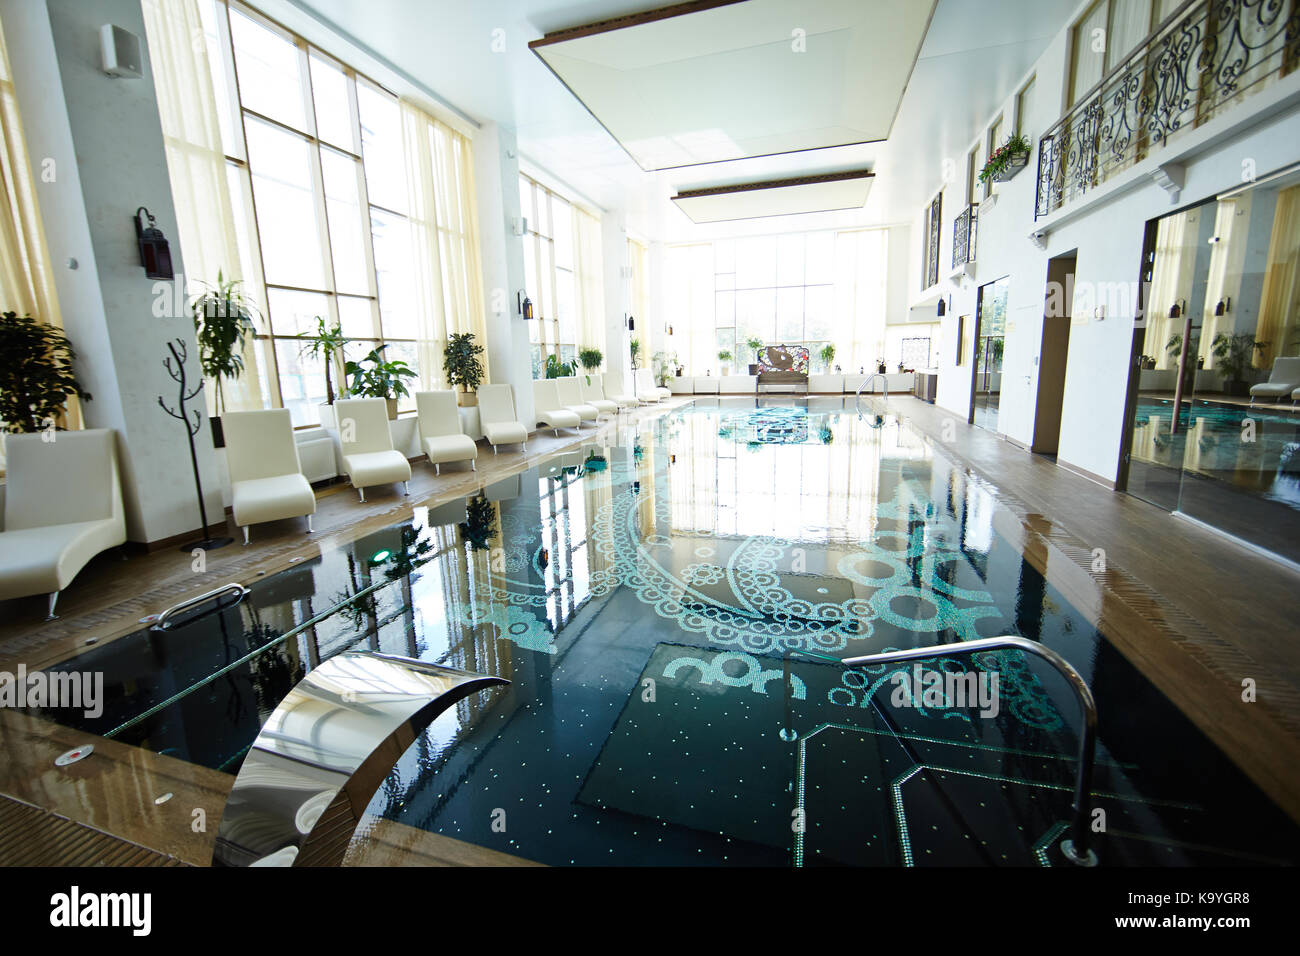 Background Image Of Designer Swimming Pool Interior In Luxury Spa